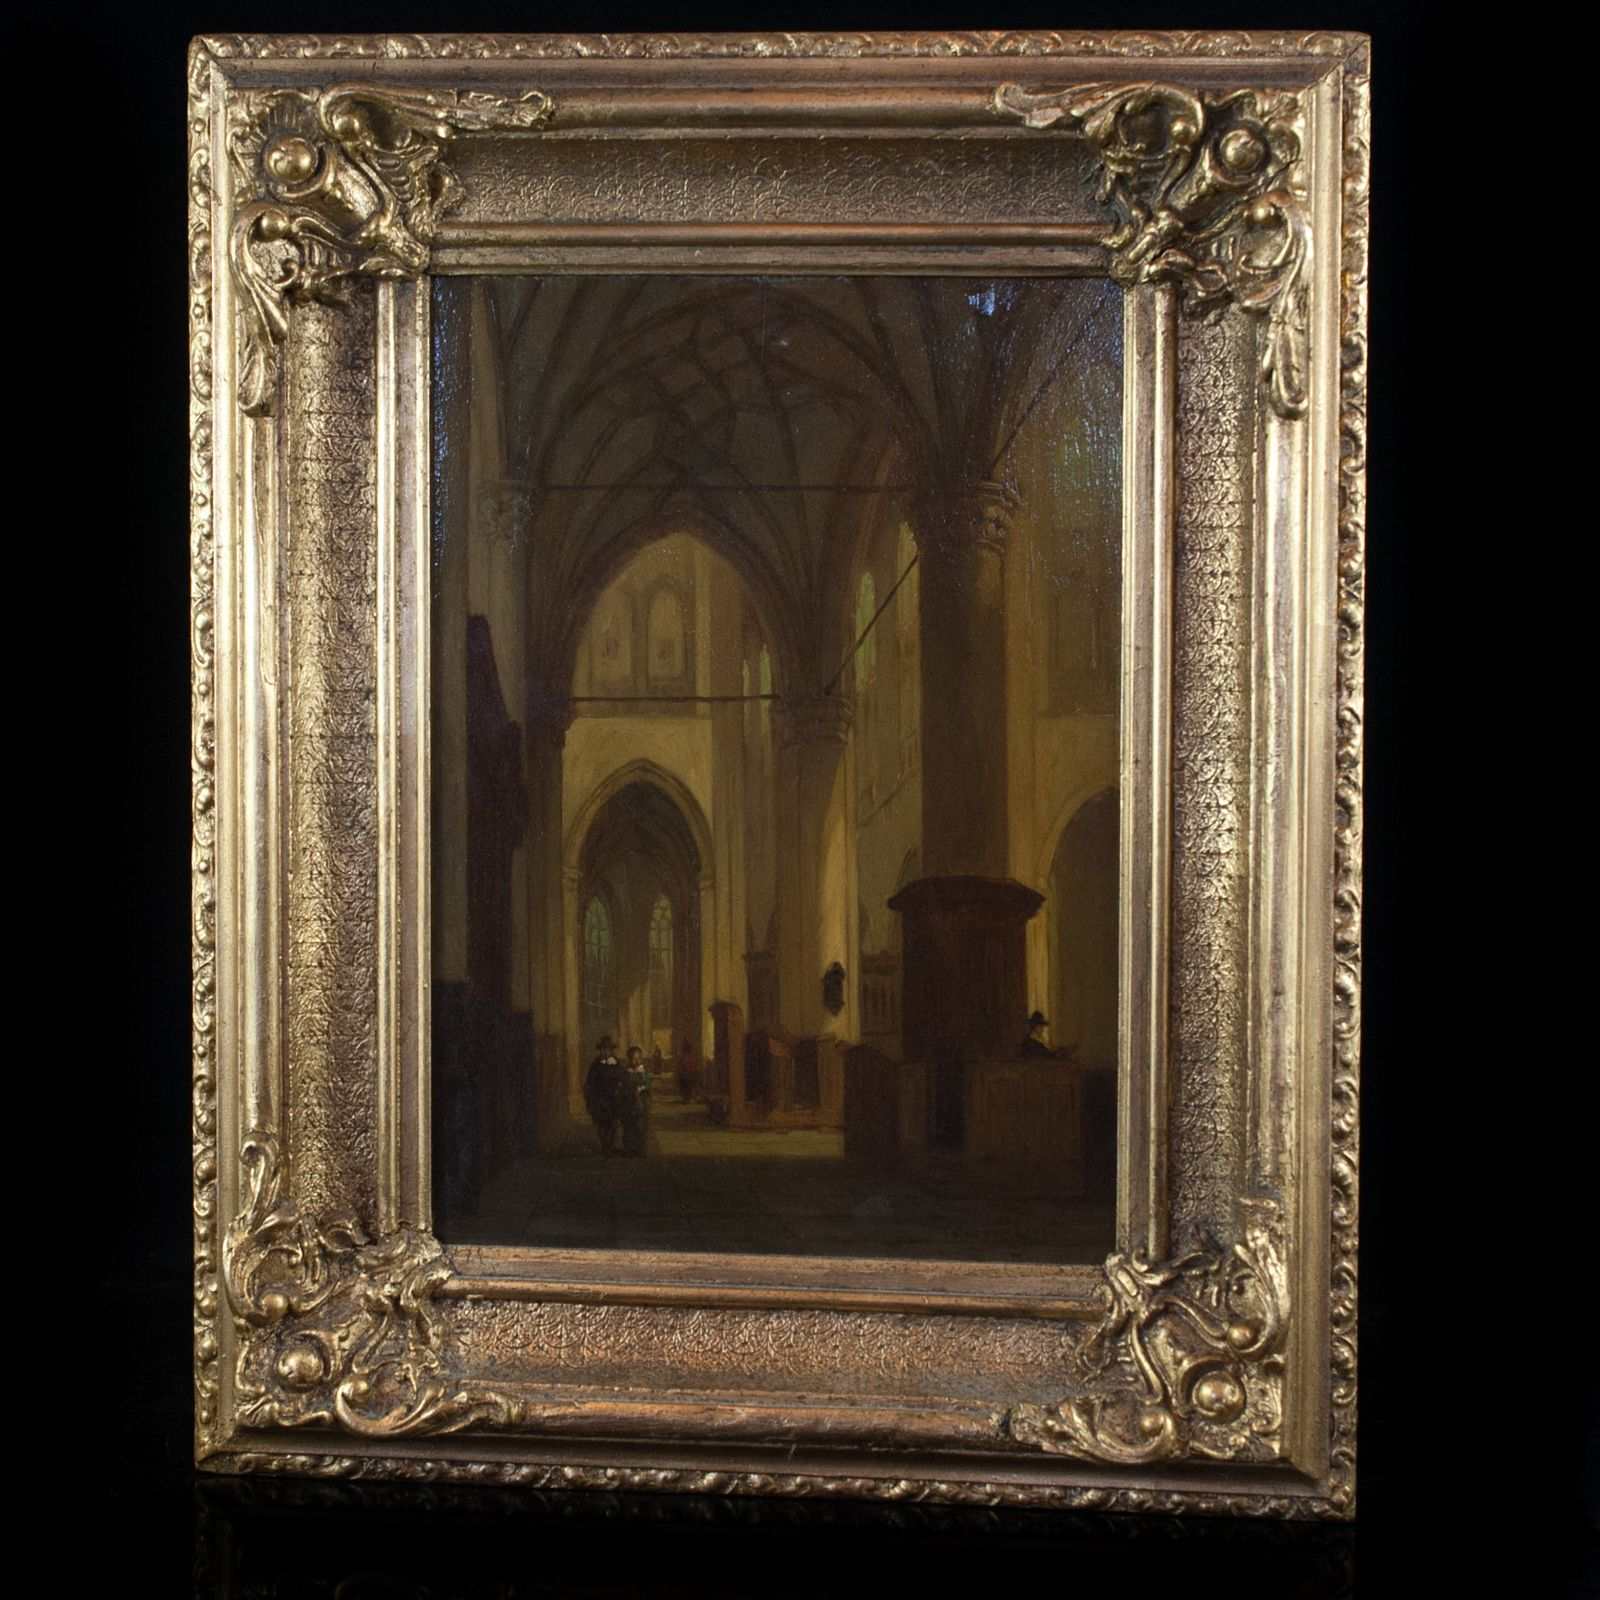 "Lot #202: Jan Baptiste Tetar van Elven (Dutch 1805 – 1879) This Oil on Panel Painting by Jan Baptise Tetar van Elven is signed ""Tetar van Elven"" (Bottom right). The Painting depicts a large cathedral interior. Surrounding the Painting is a finely detailed gilded wood frame.  CIRCA: 19th ORIGIN: Netherlands DIMENSIONS: 18 1/2″ x 15″"